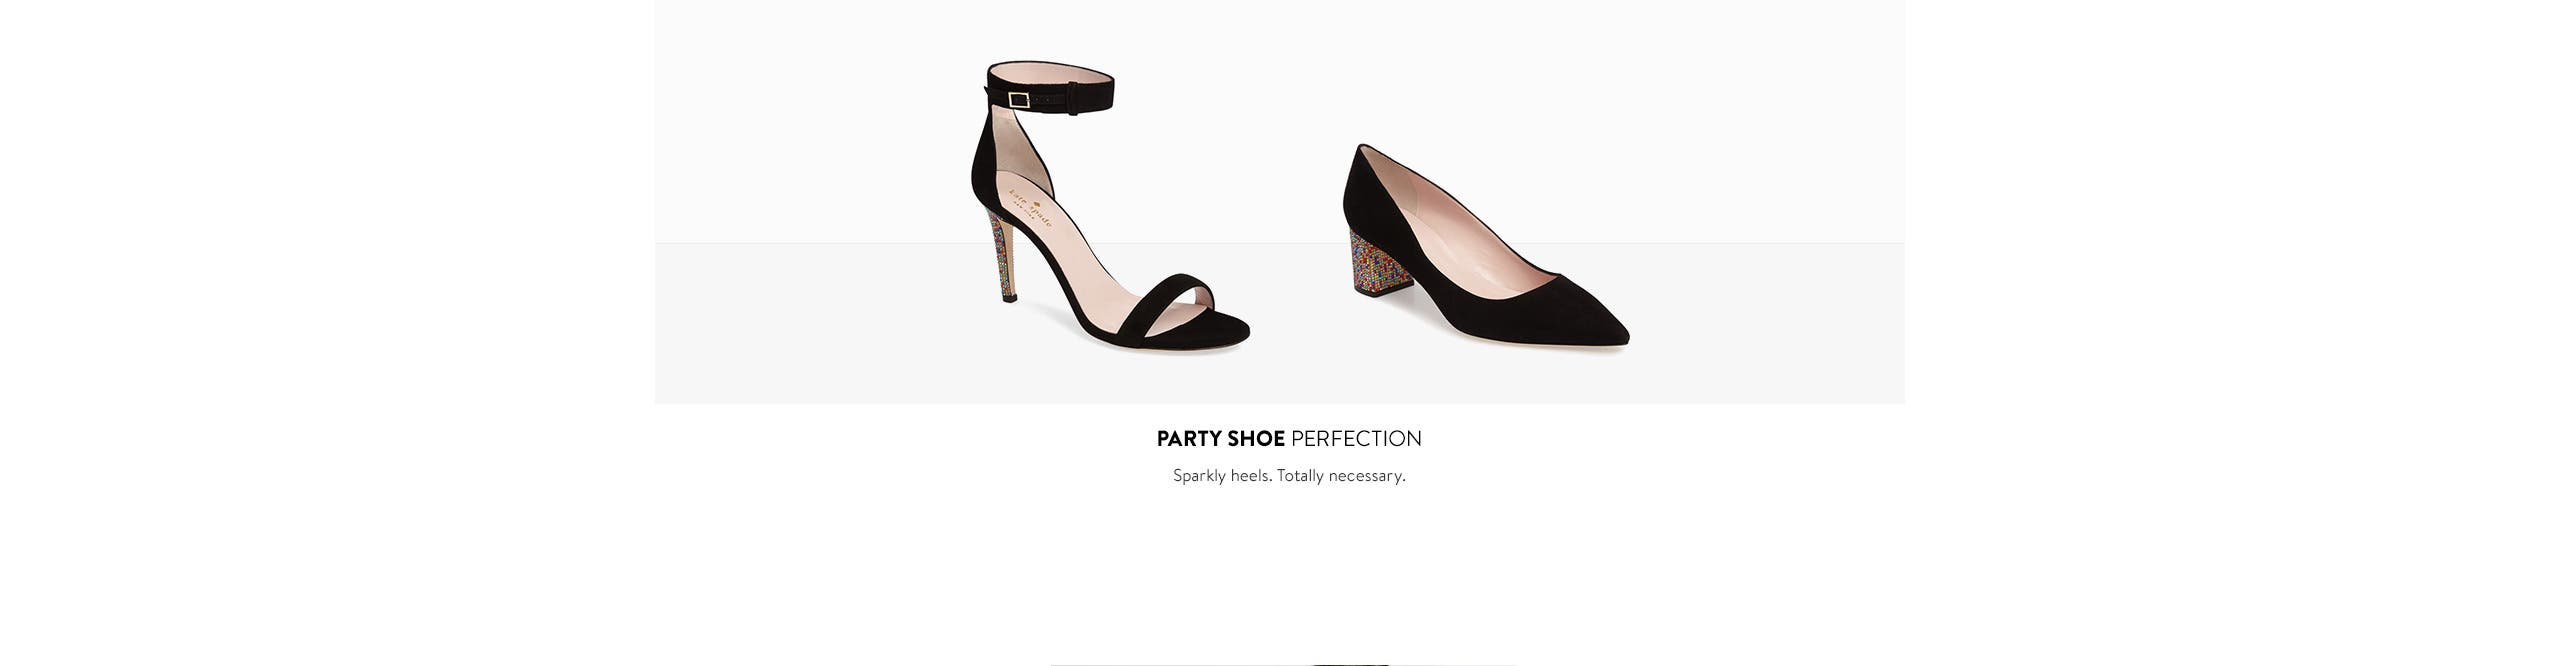 Party shoe perfection.